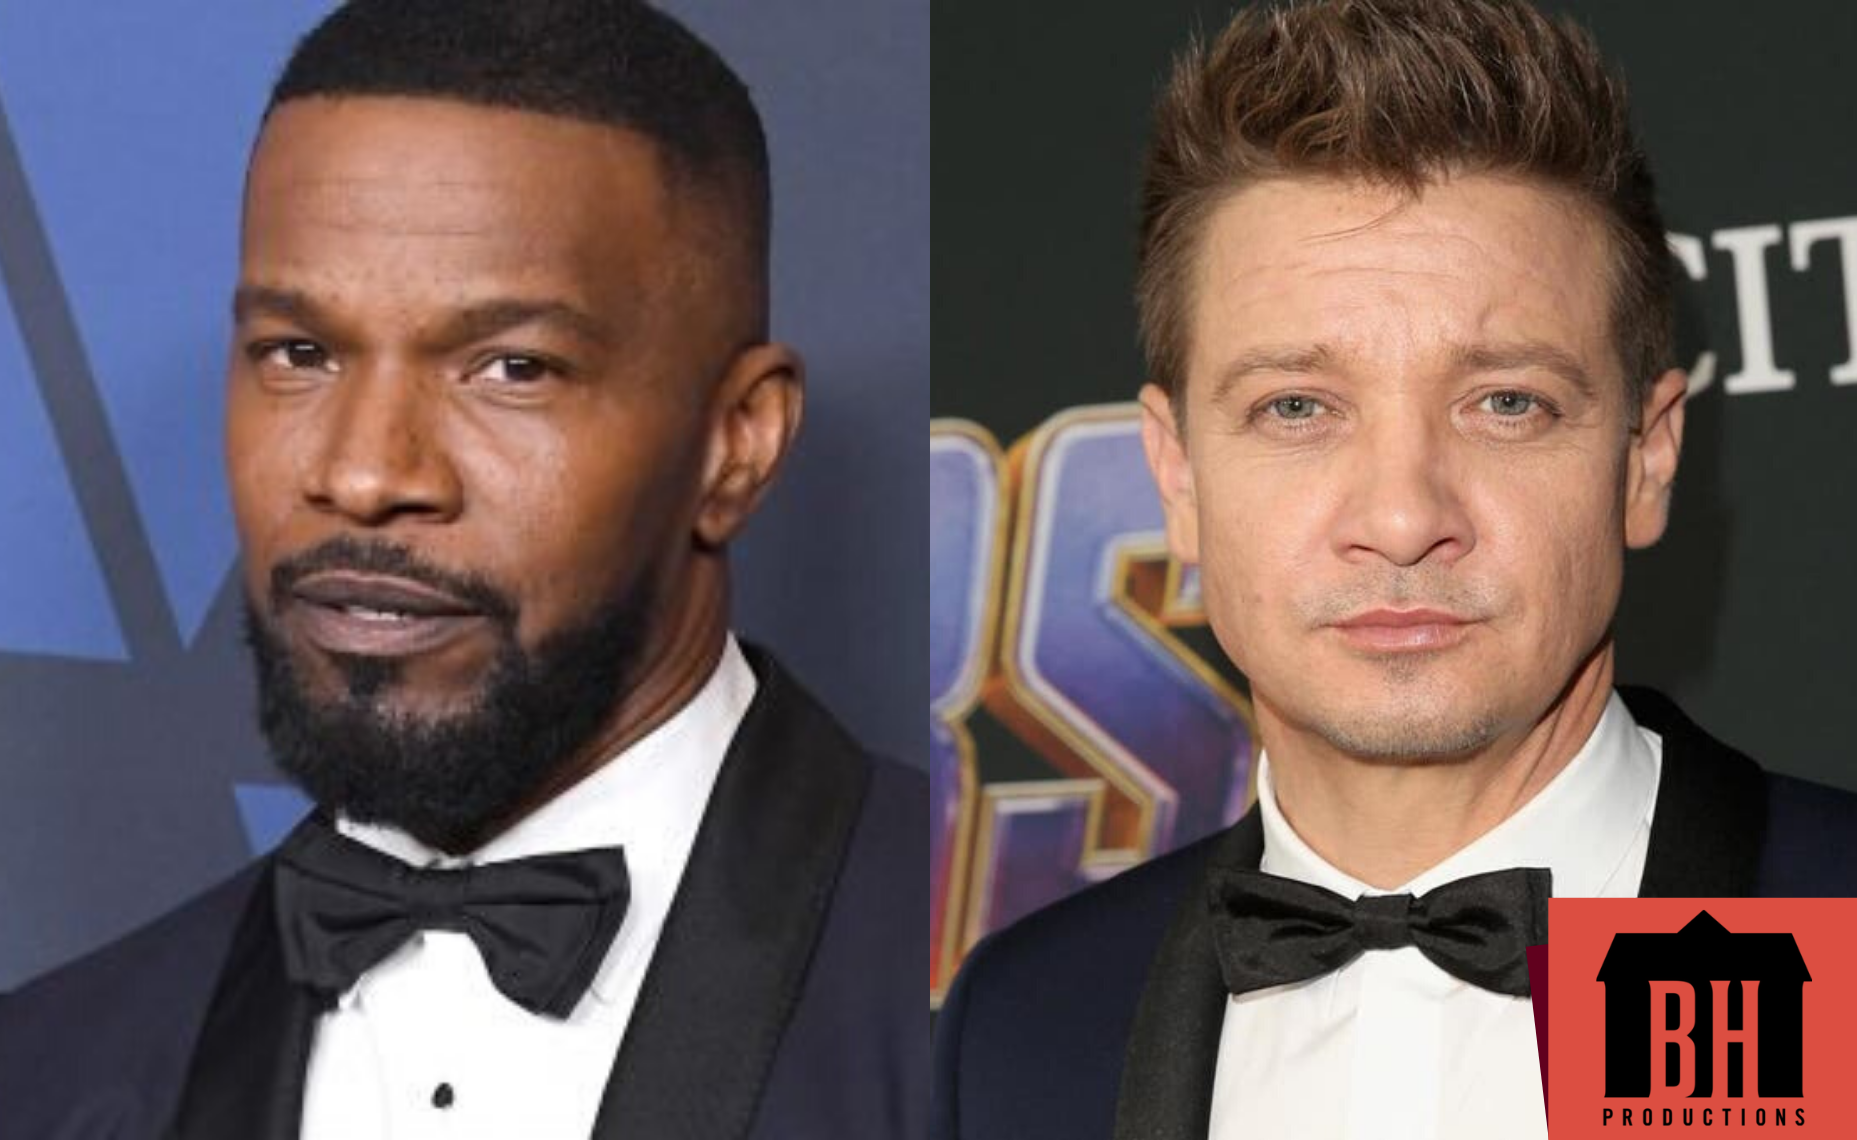 spawn, blumhouse productions, Jamie Fox, Jeremy Renner, diversity, hollywood, inclusive, marketing, upcoming productions, tv shows, films